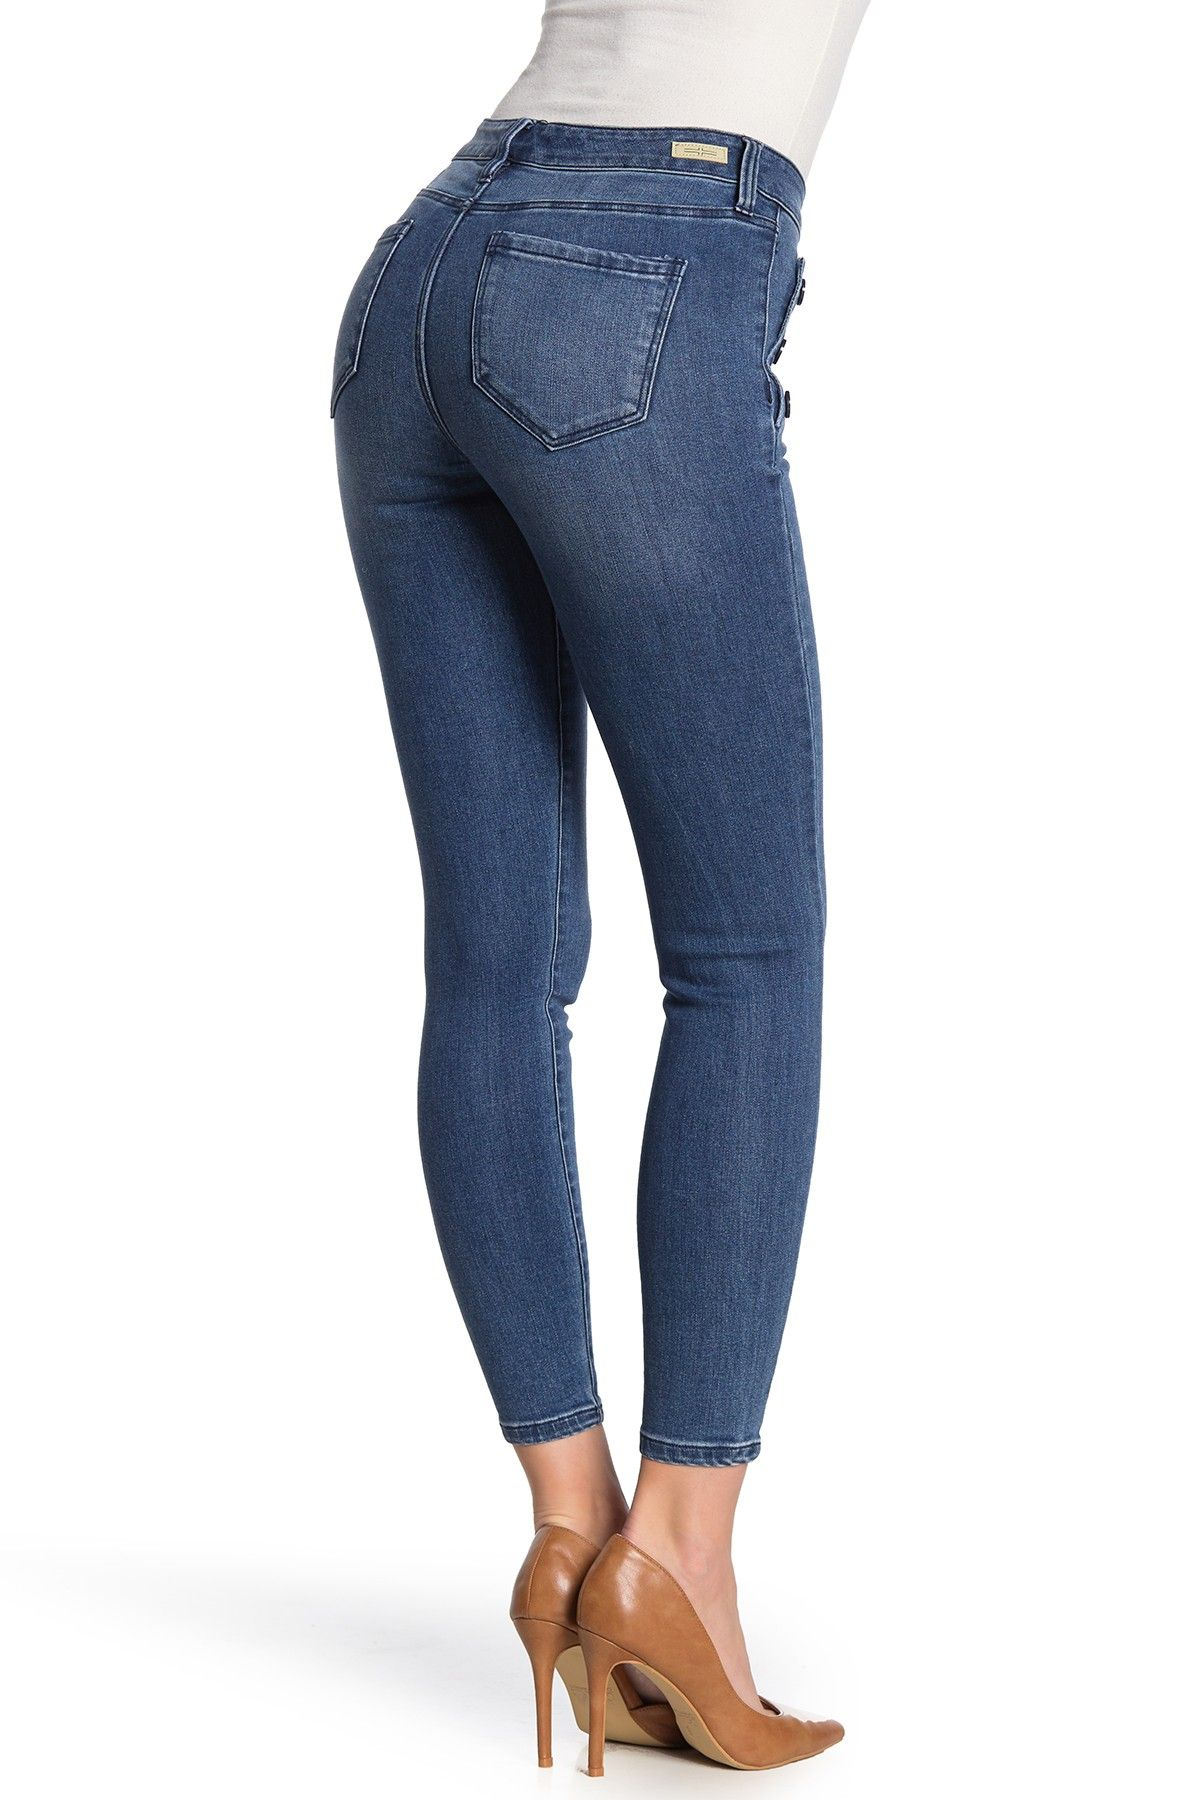 Liverpool Jeans Co Abby Skinny Sailor Jeans #Sponsored , #ad